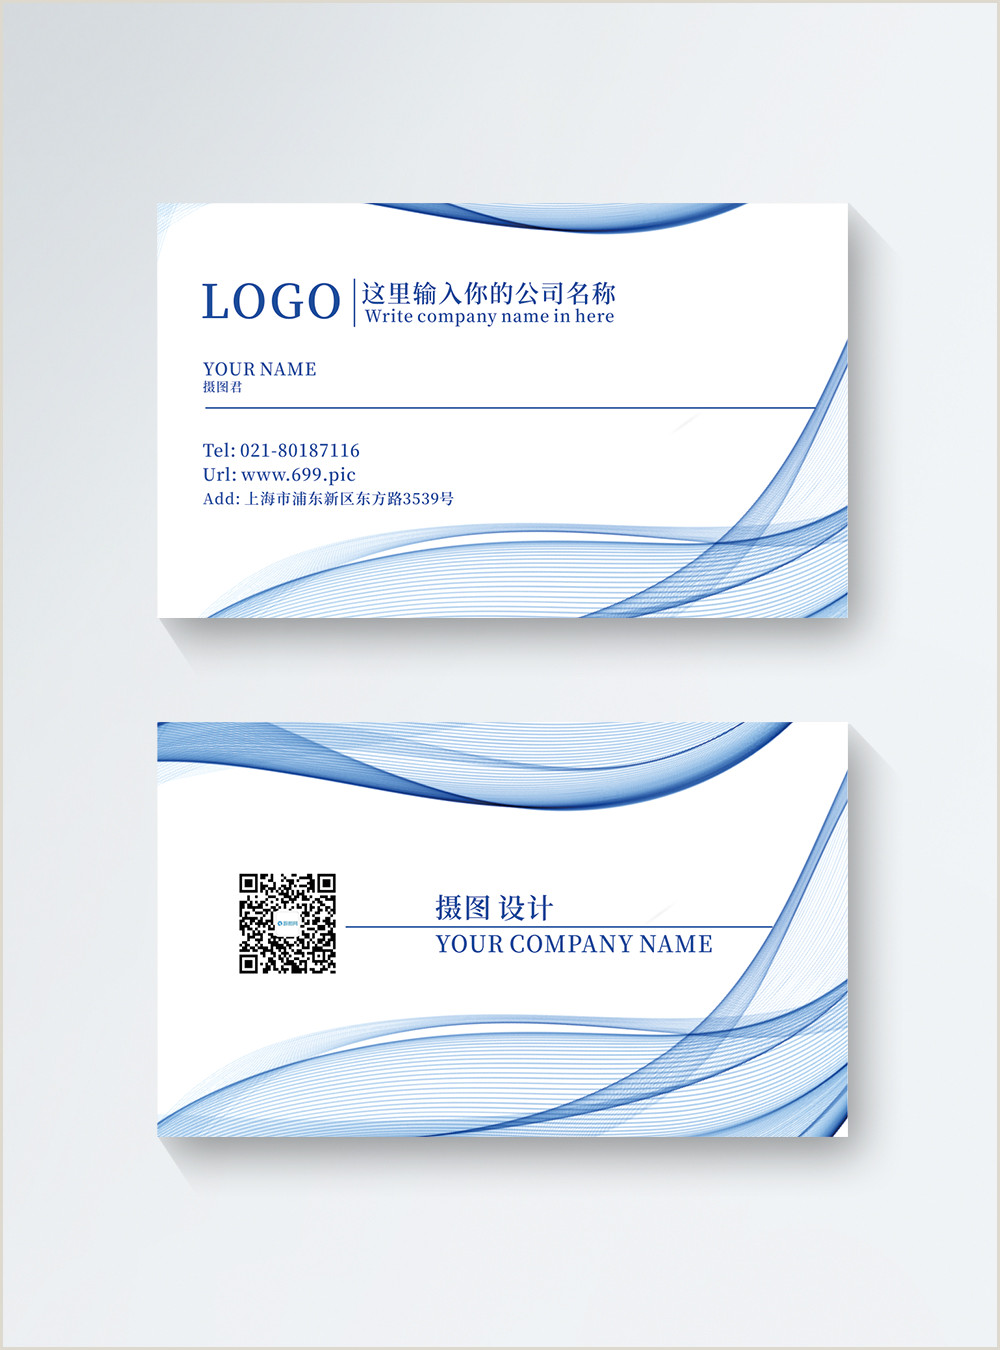 Cheap Personal Business Cards Simple Business Personal Business Card Template